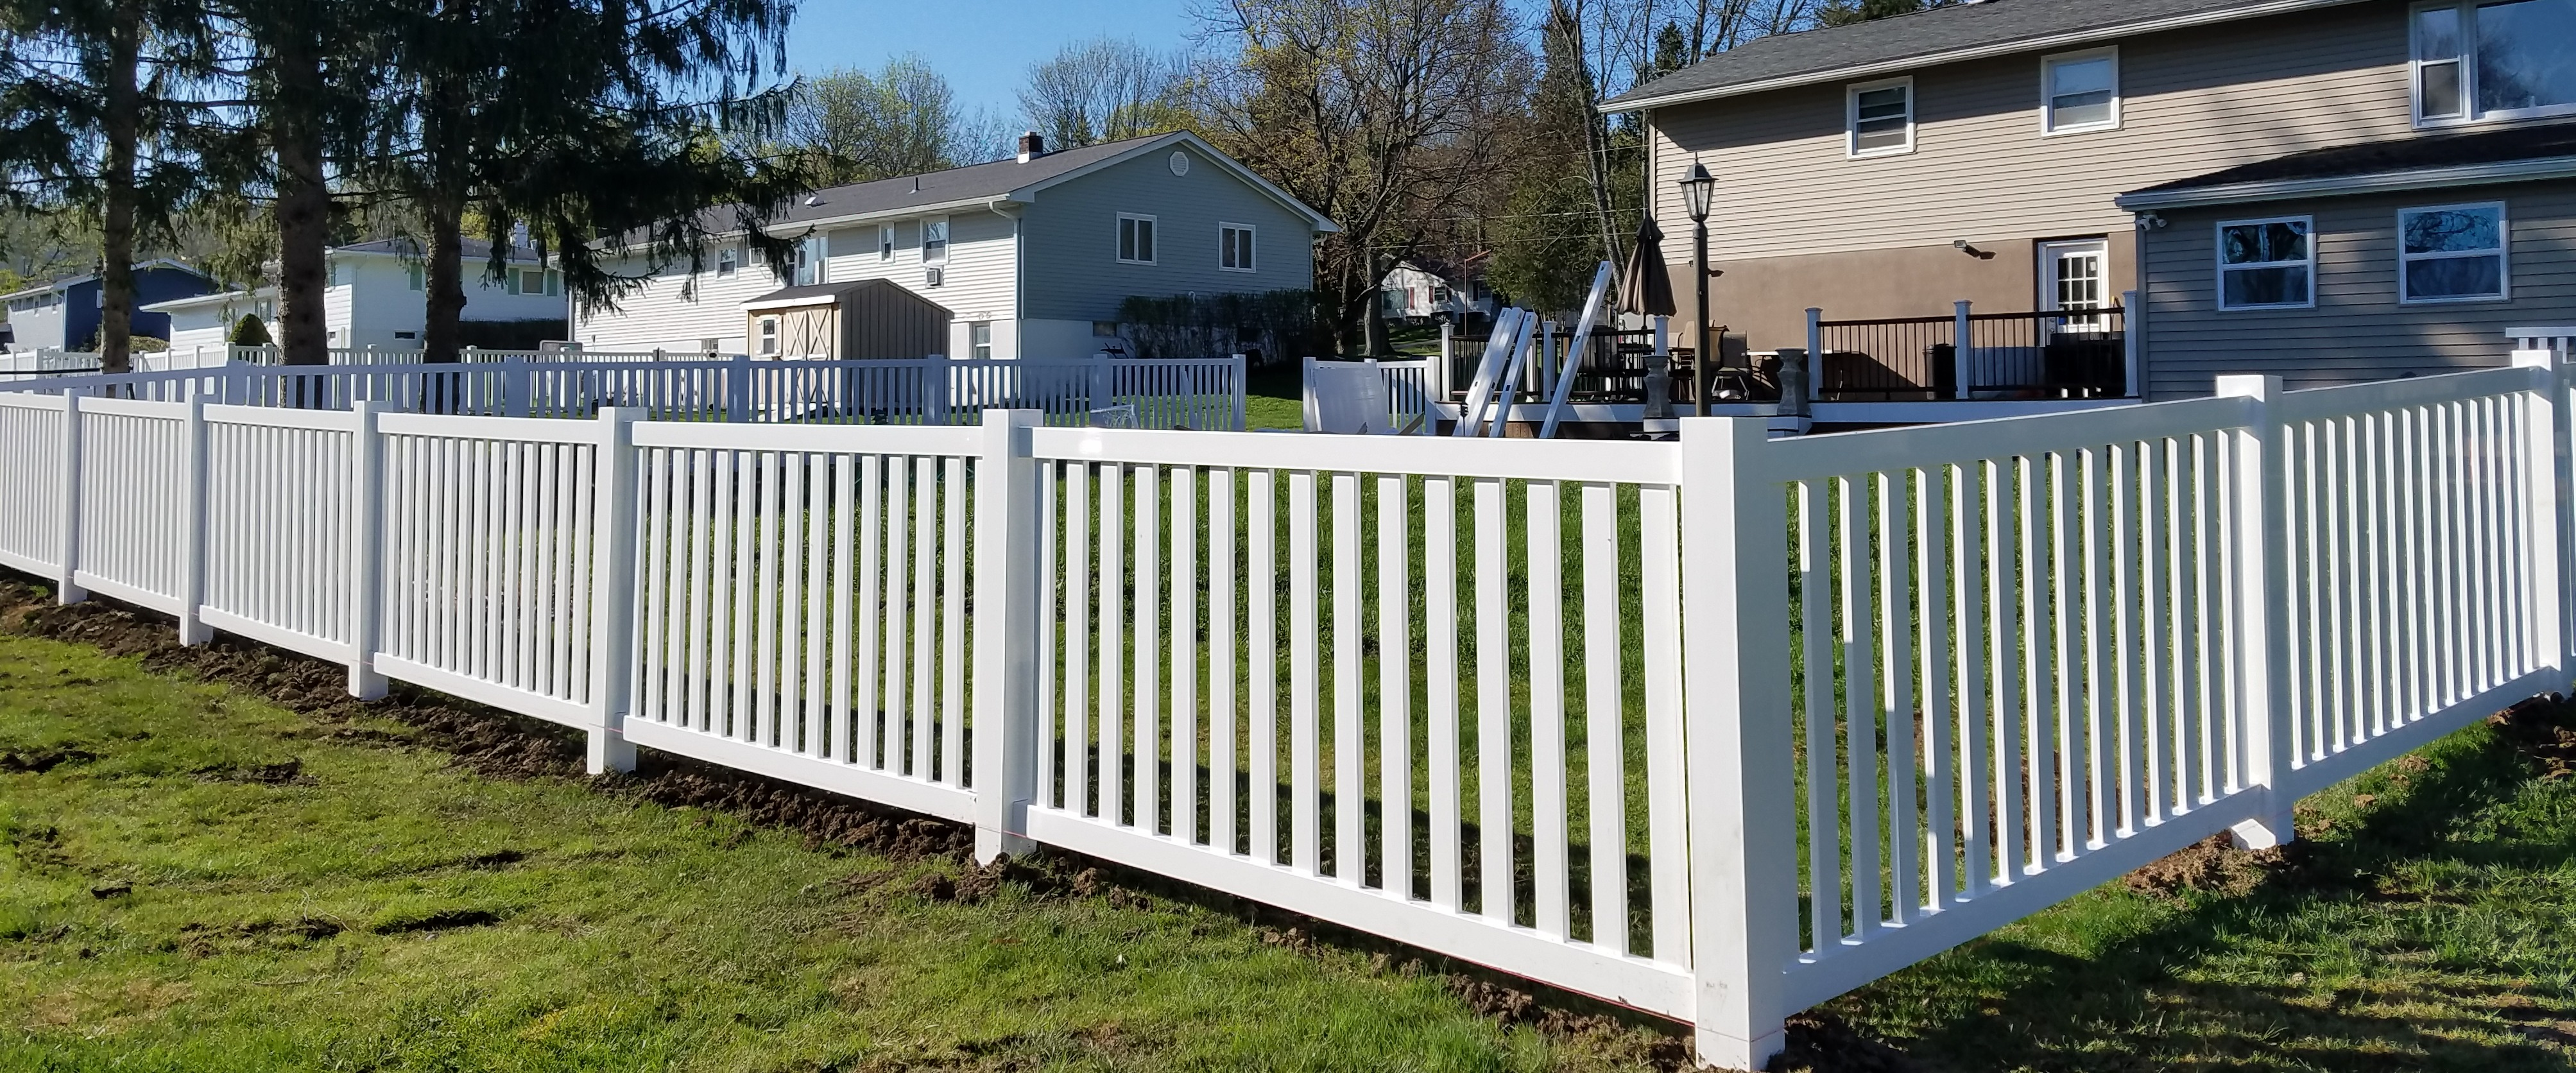 Diy Vinyl Fence Supplies Weather Tite Fencing Central New York